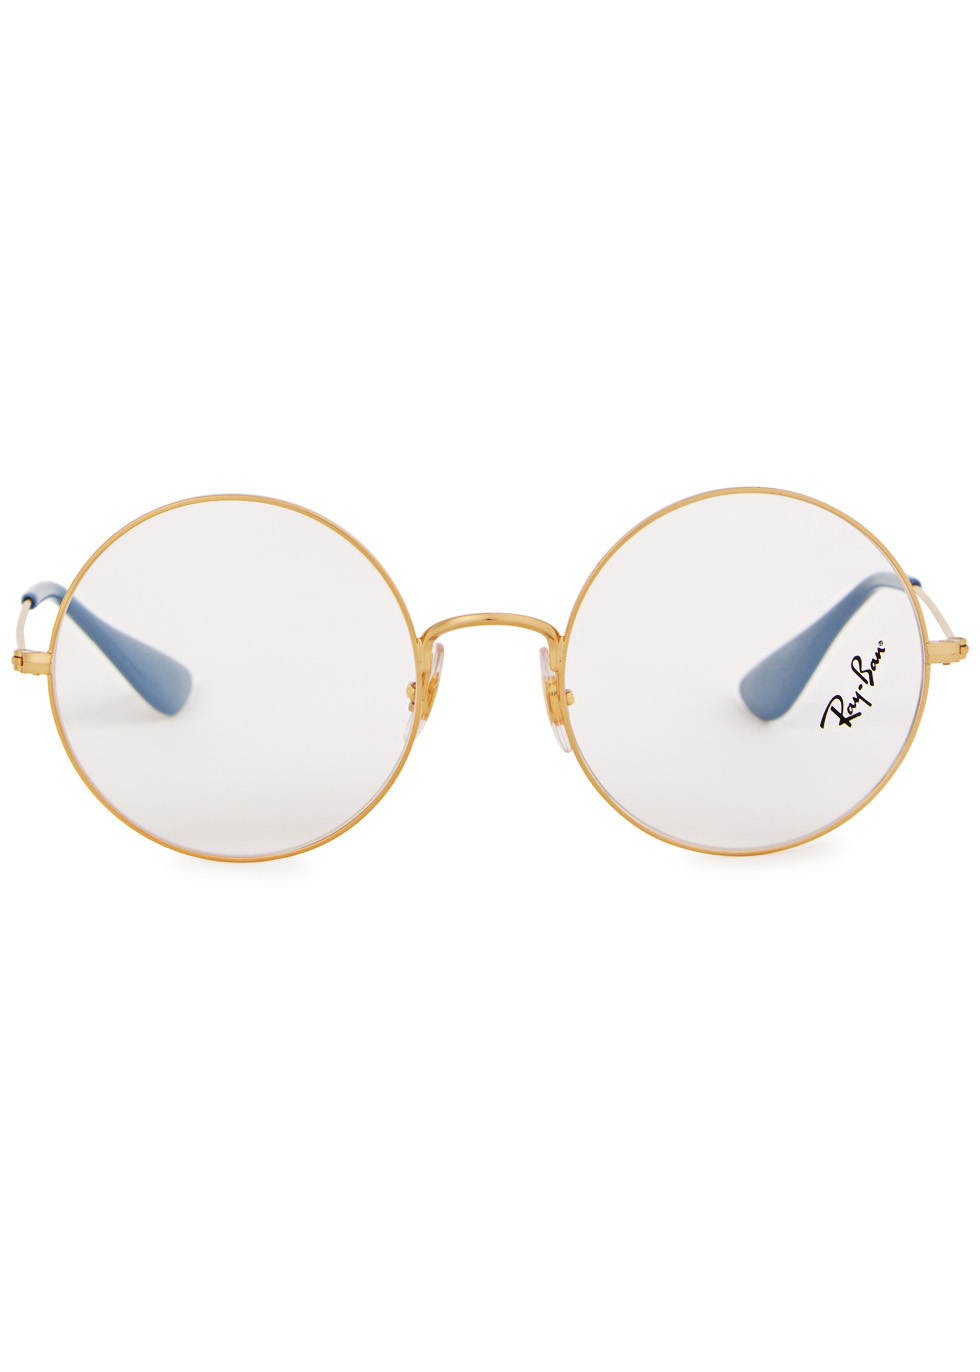 Gold round-frame optical glasses - Ray-Ban